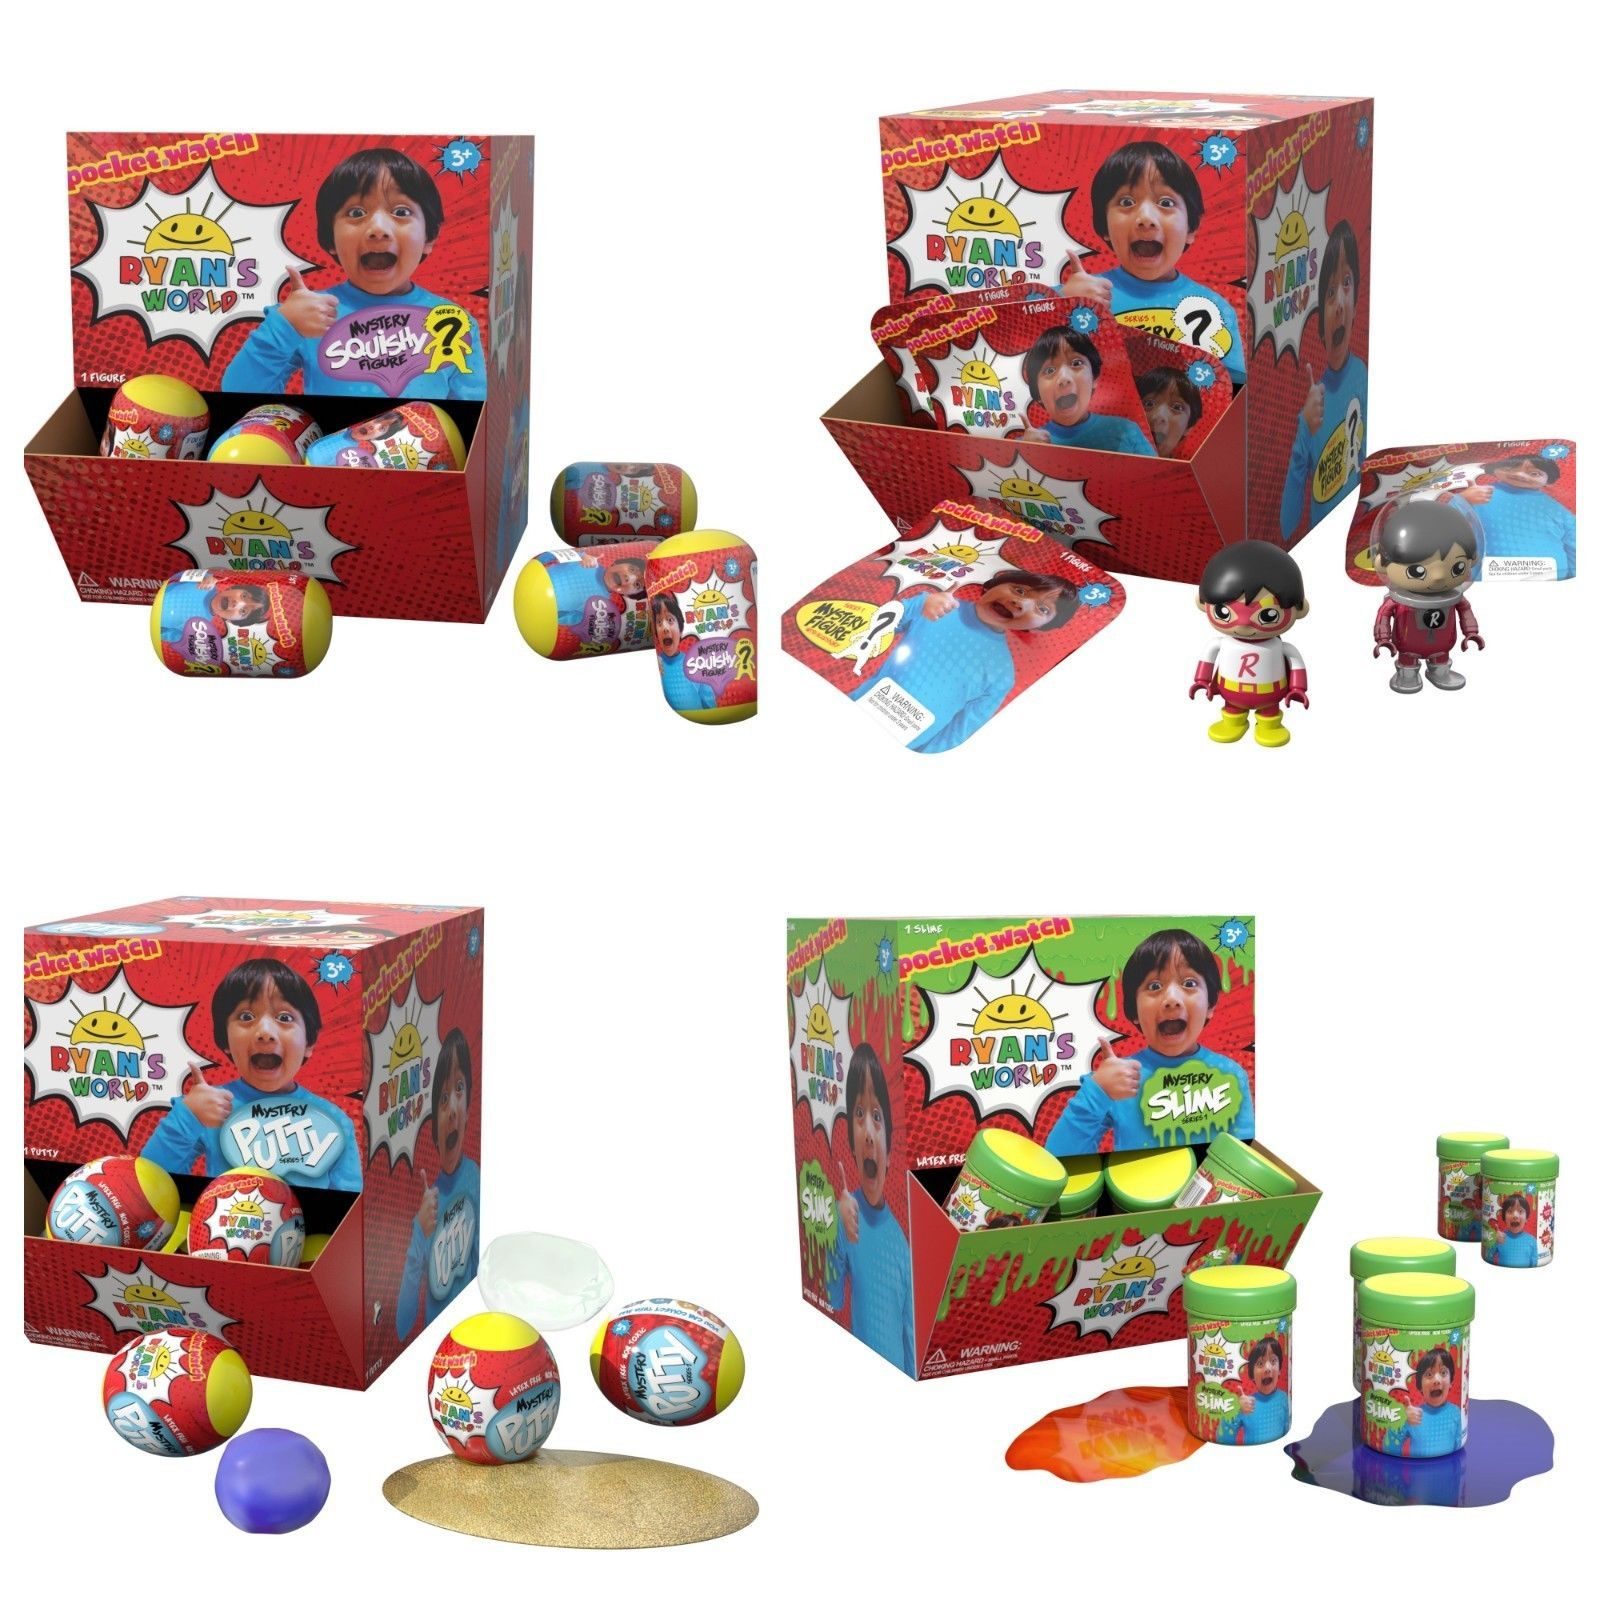 Pin On Games Toys And Train Sets 113512